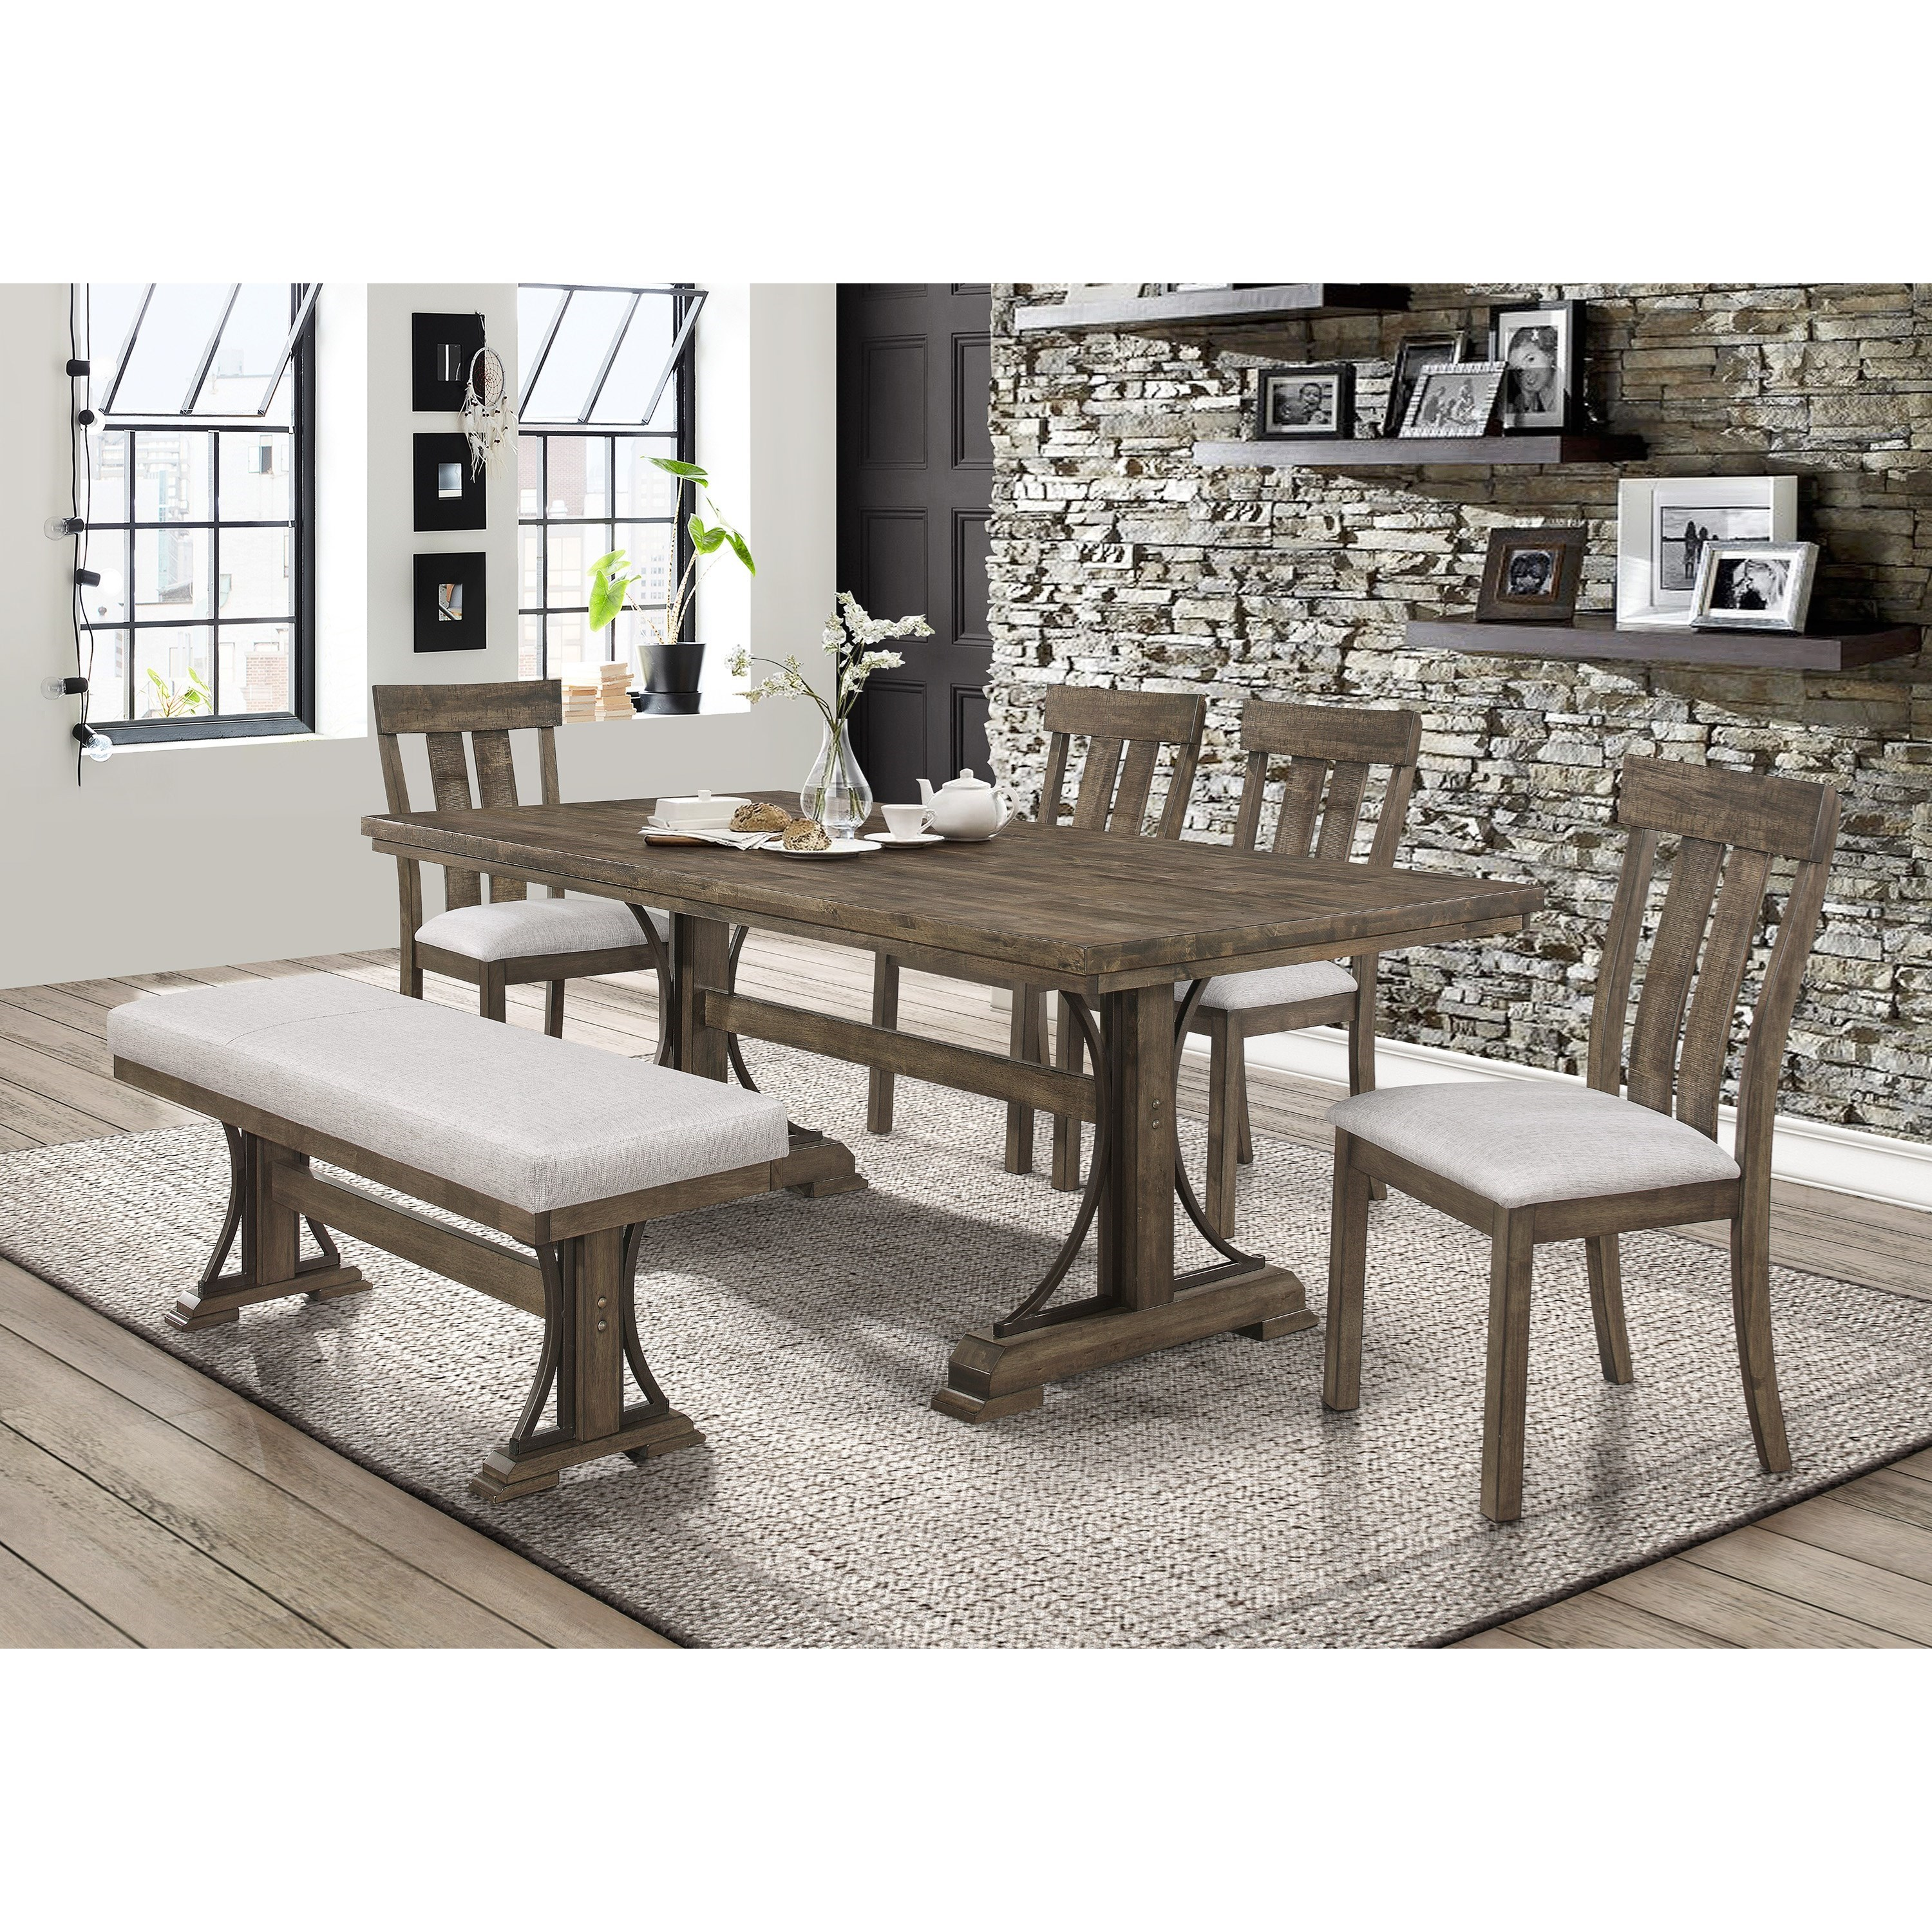 Quincy Dining Set with Bench by Crown Mark at Northeast Factory Direct